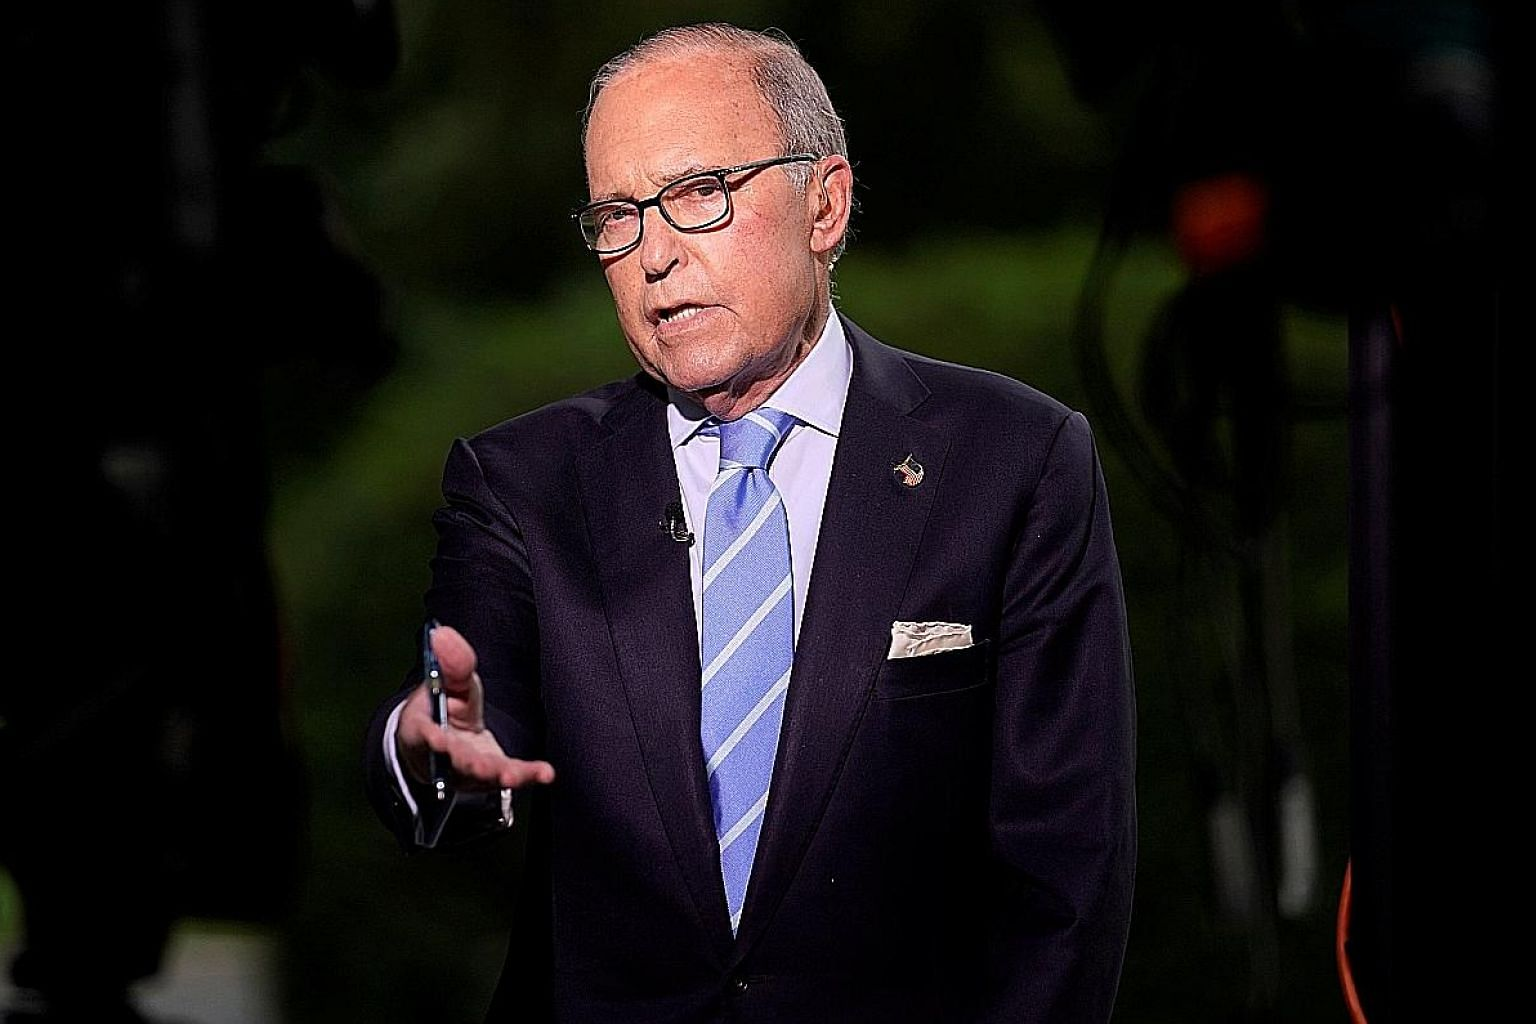 Mr Larry Kudlow's comments come as a separate report said US President Donald Trump believes it will take more time for tariffs imposed by the US on Chinese imports to bite.